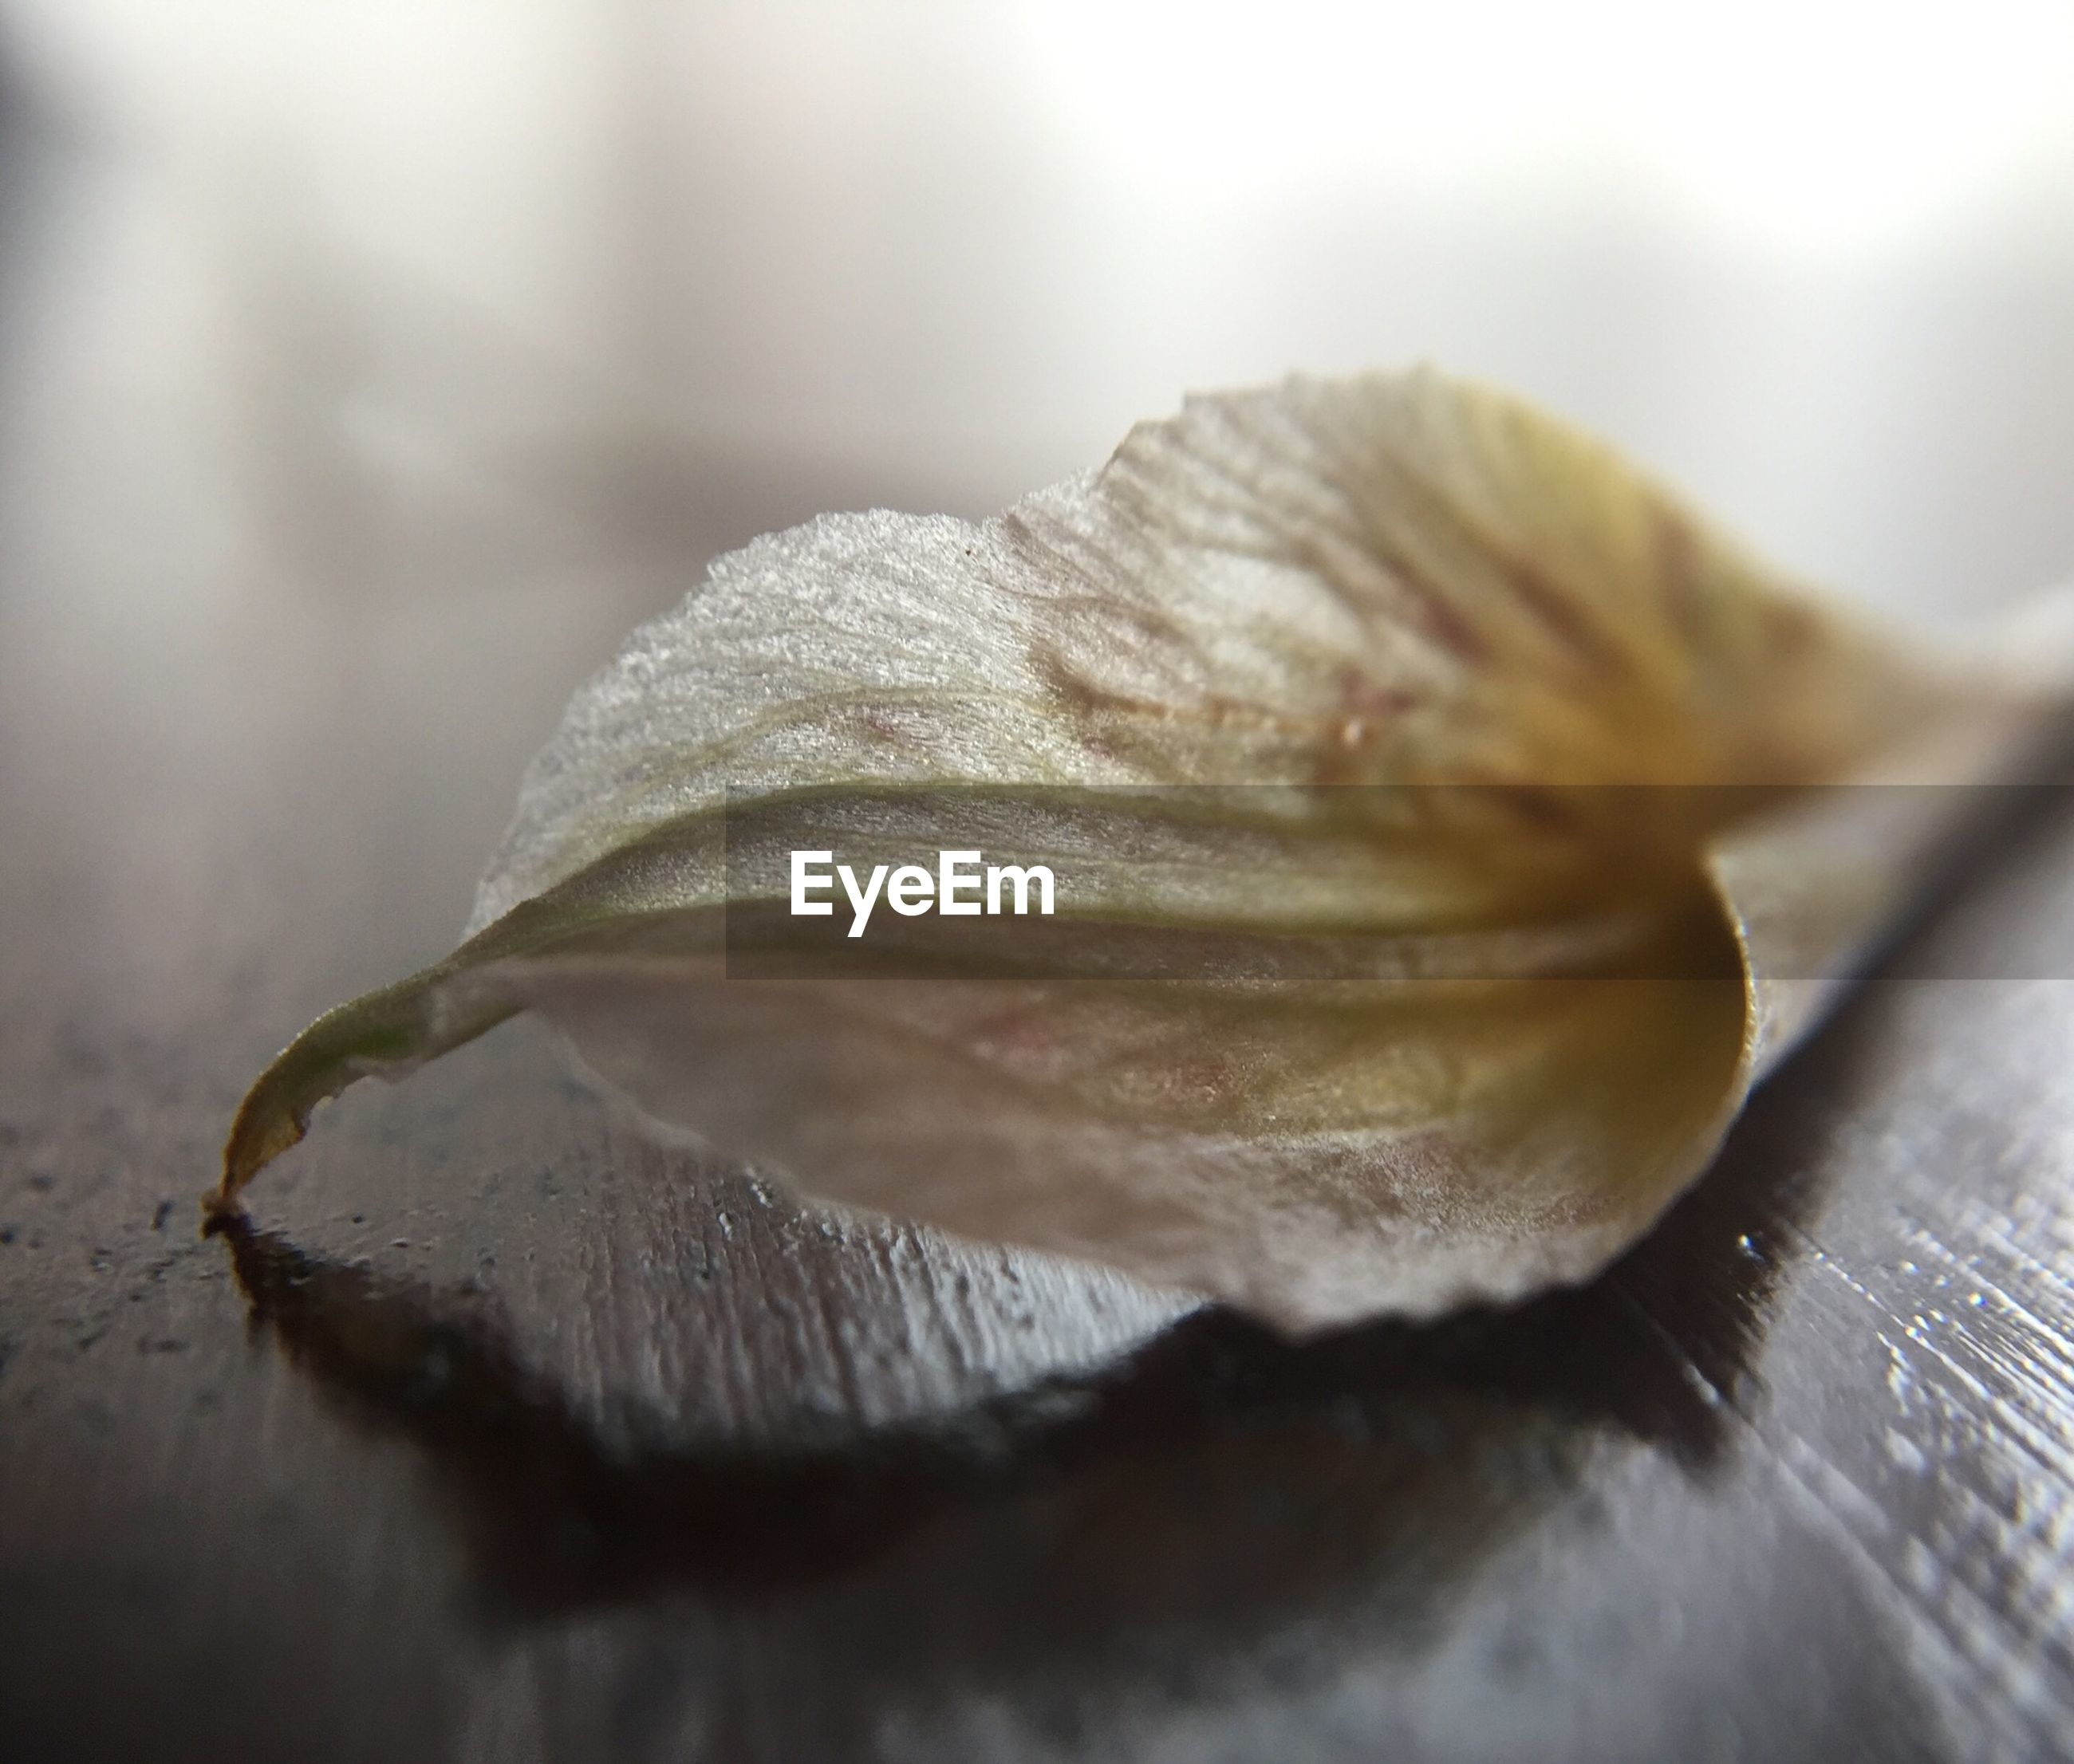 Close-up of fallen petal on wood